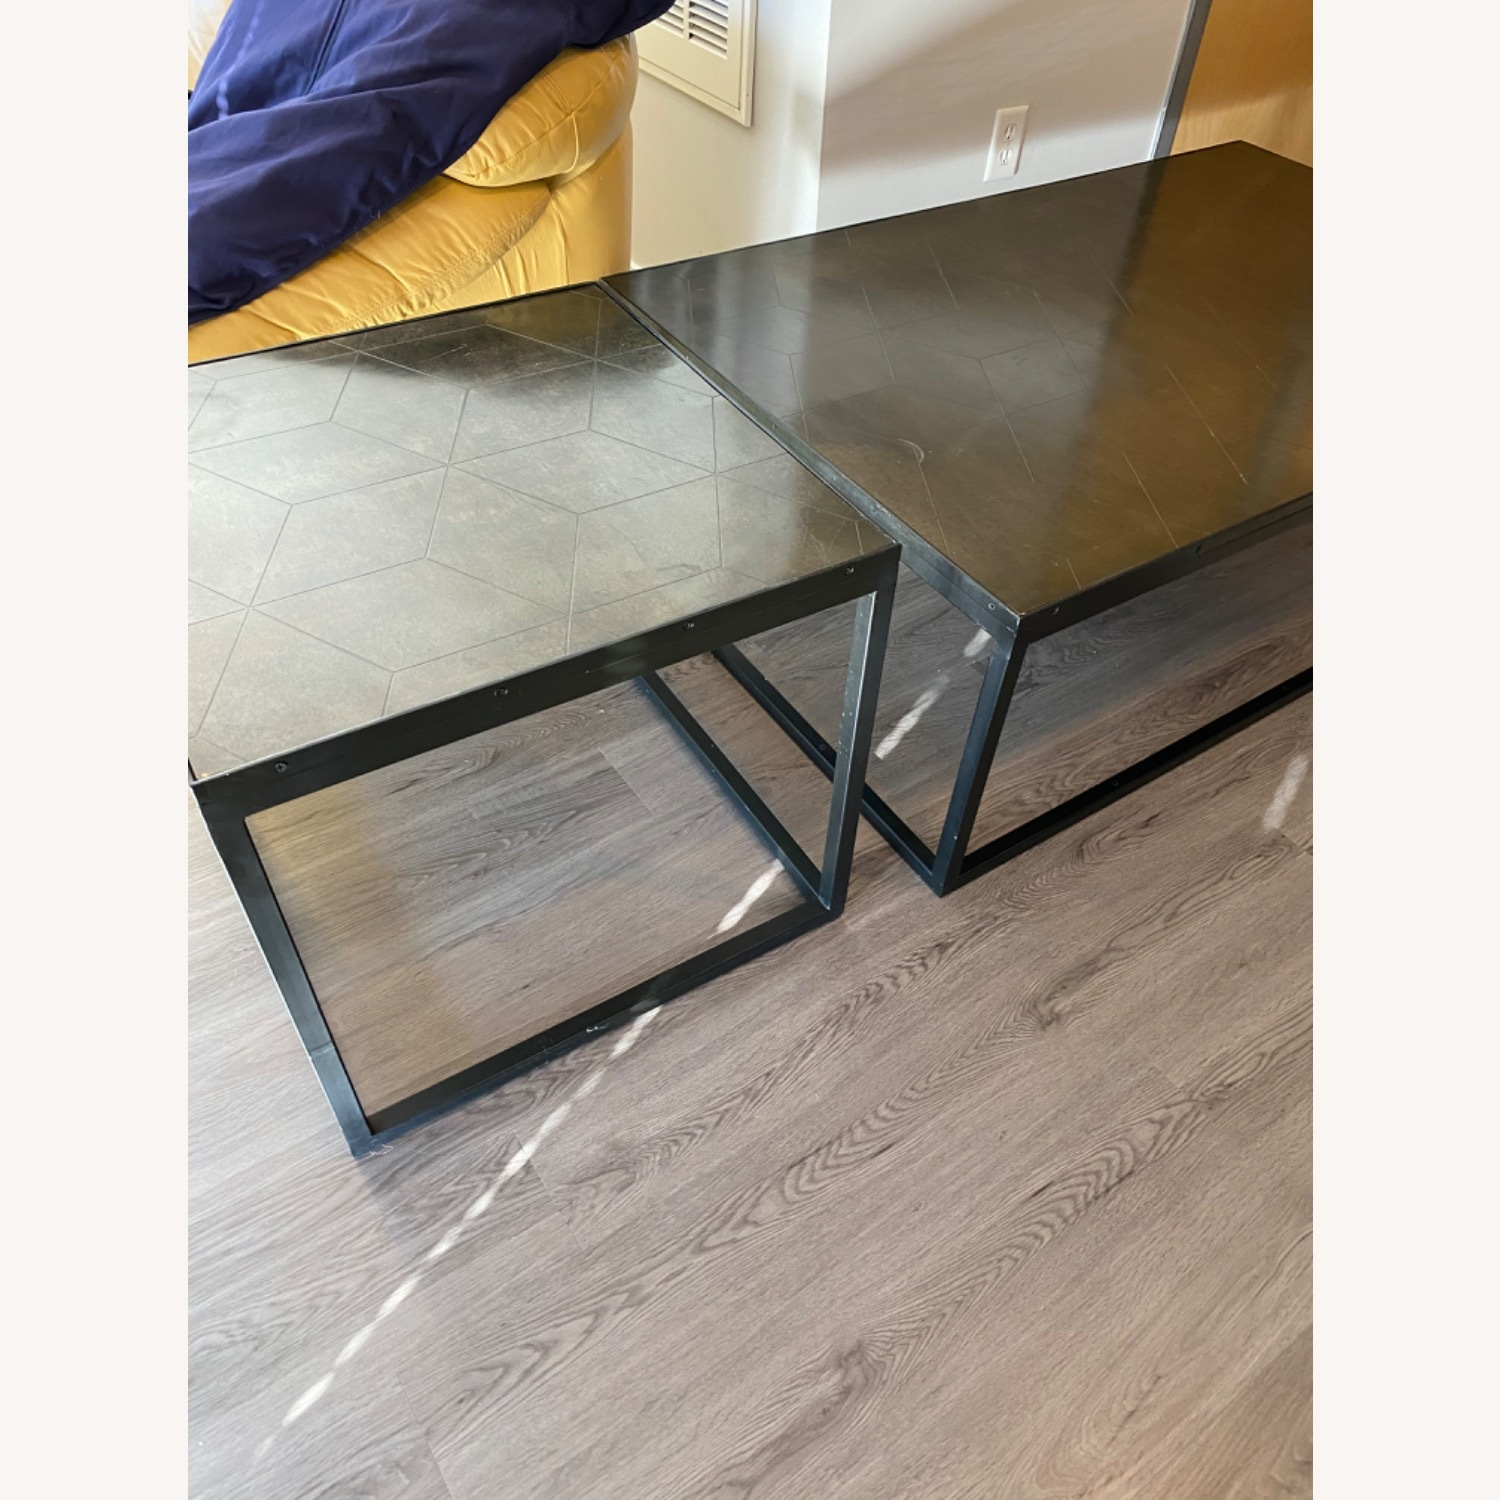 Restoration Hardware Metal Parquet Side Table - image-2